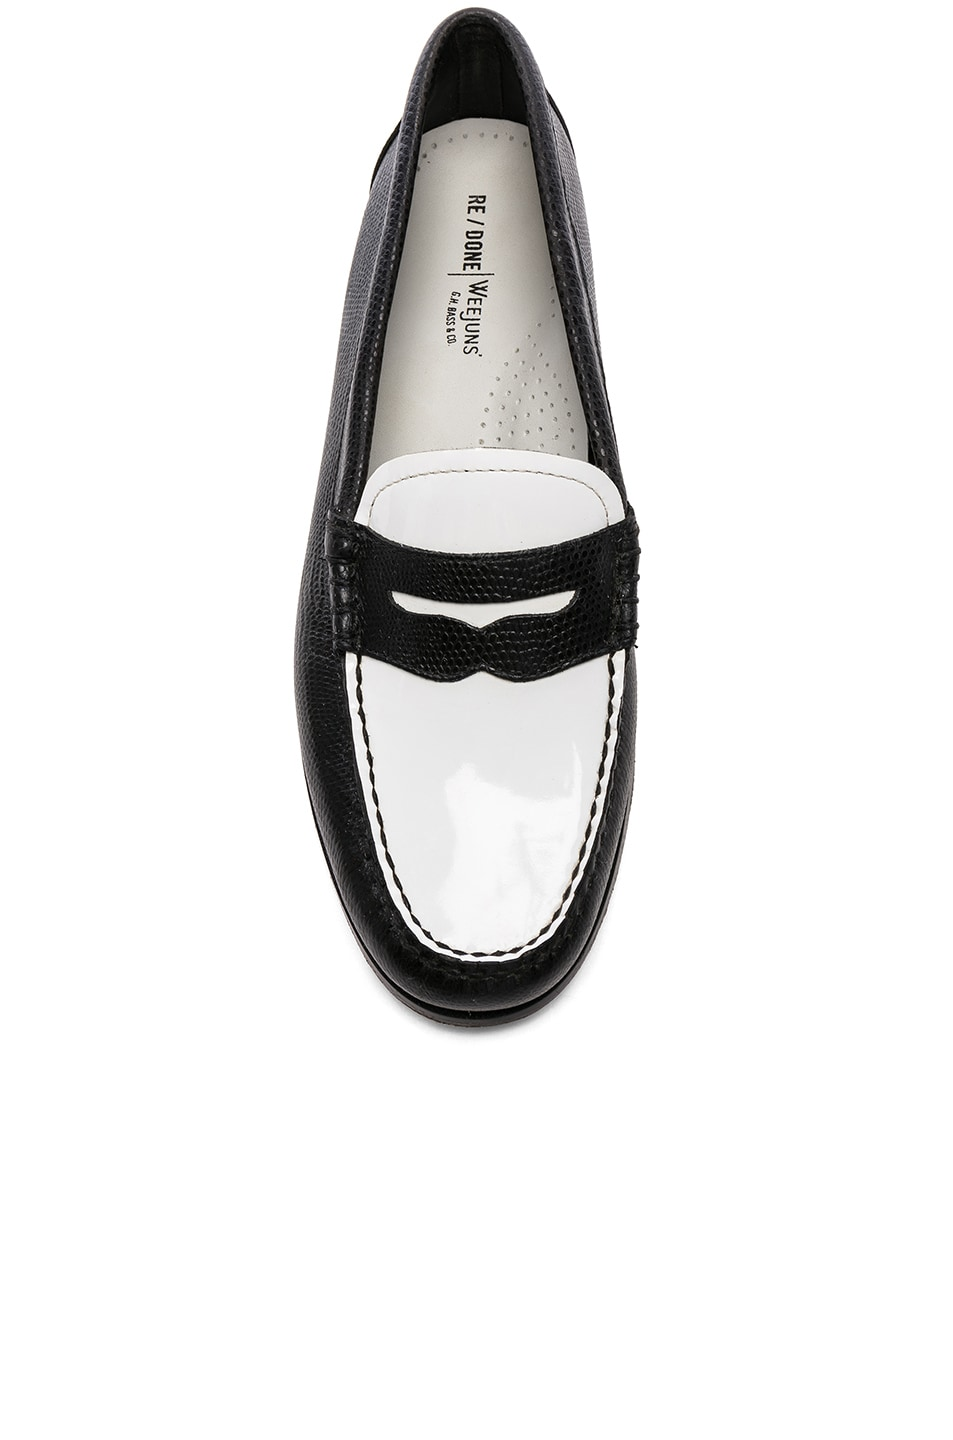 Image 4 of RE/DONE x G.H. Bass & Co. Whitney Loafer in White Patent Plug and Black Lizard Emboss